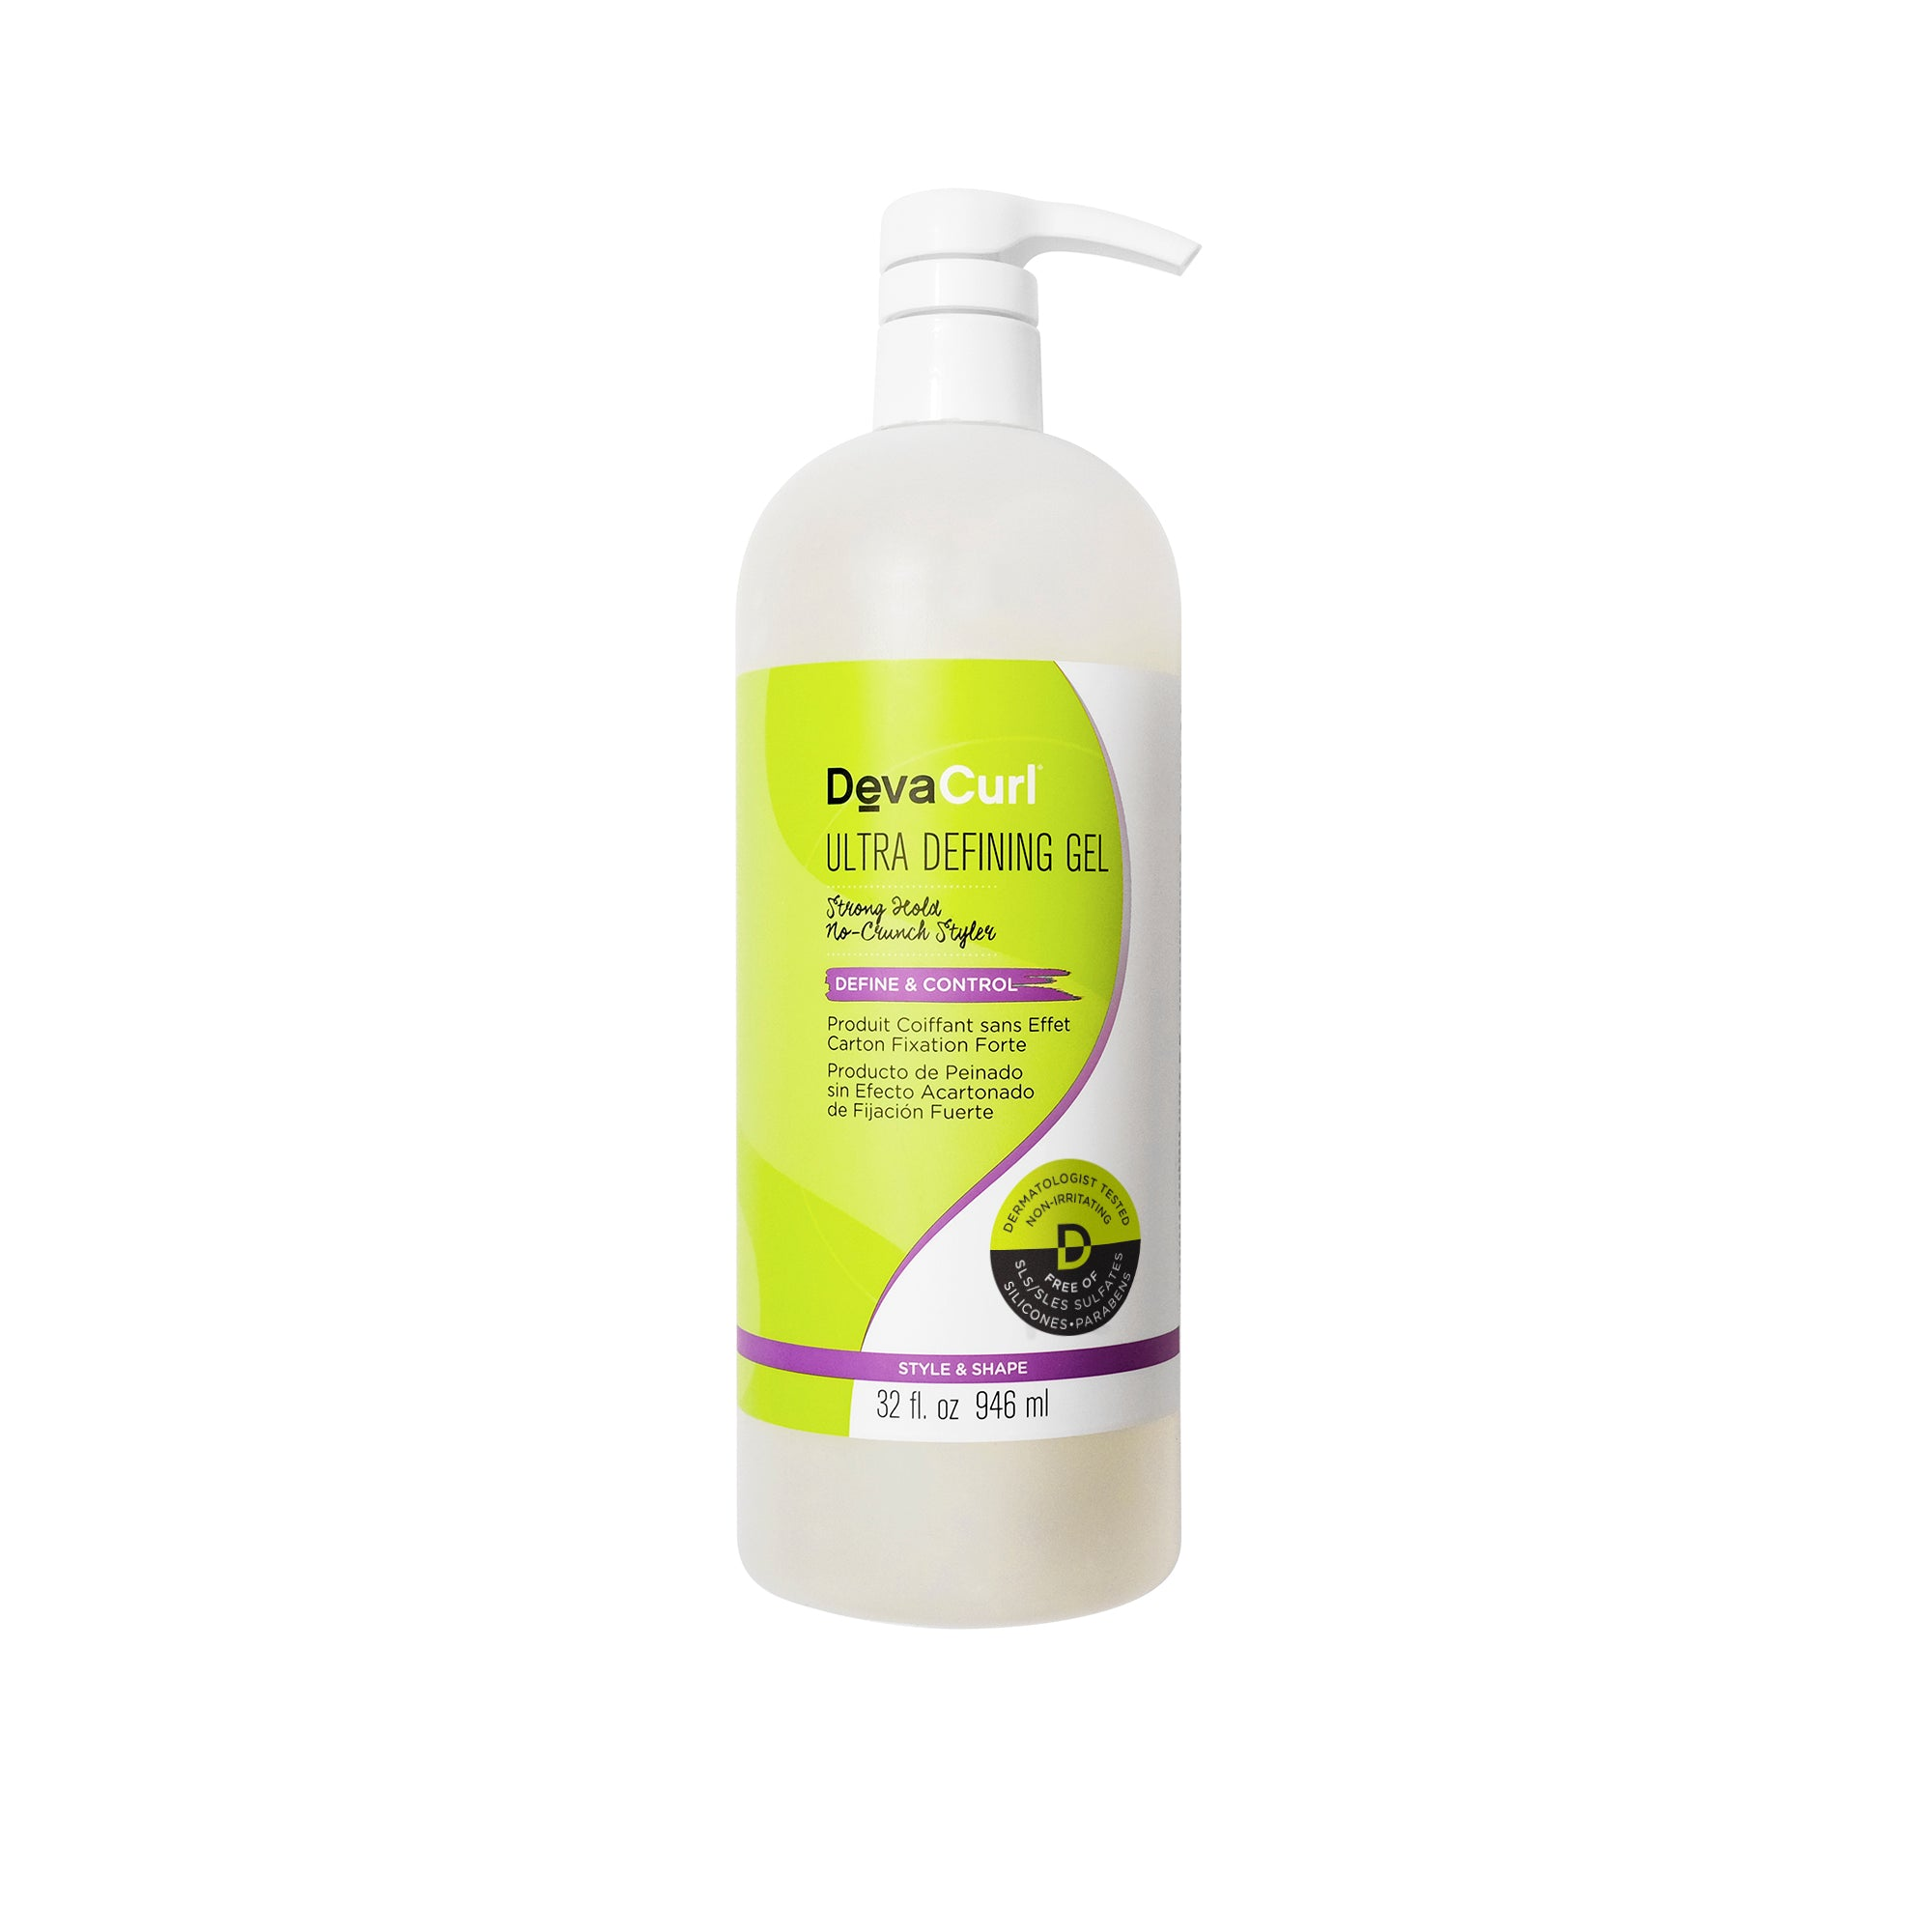 DevaCurl ultra defining gel 32 oz